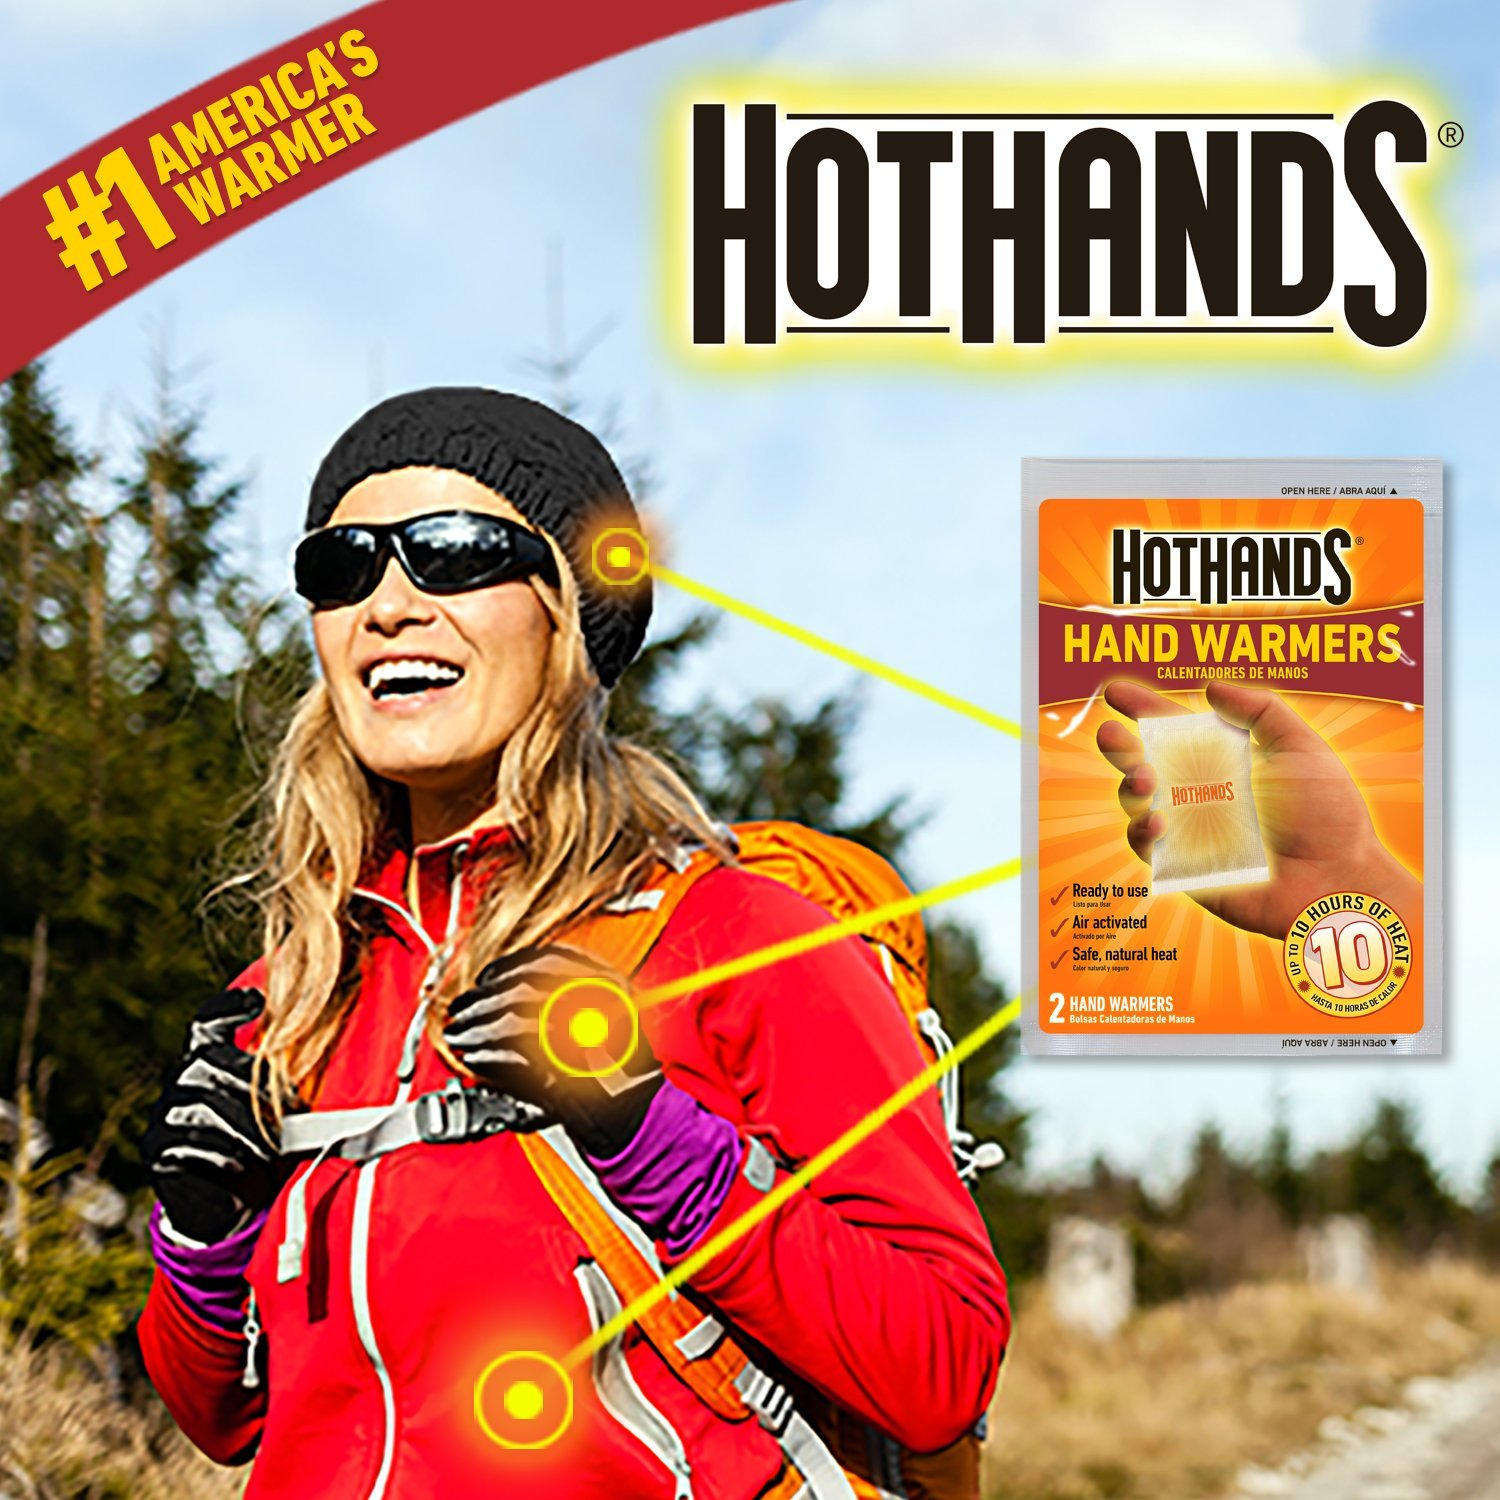 Long Lasting Safe Natural Odorless Air Activated Warmers Up to 10 Hours of Heat HotHands Hand Warmers 10 Pair Value Pack